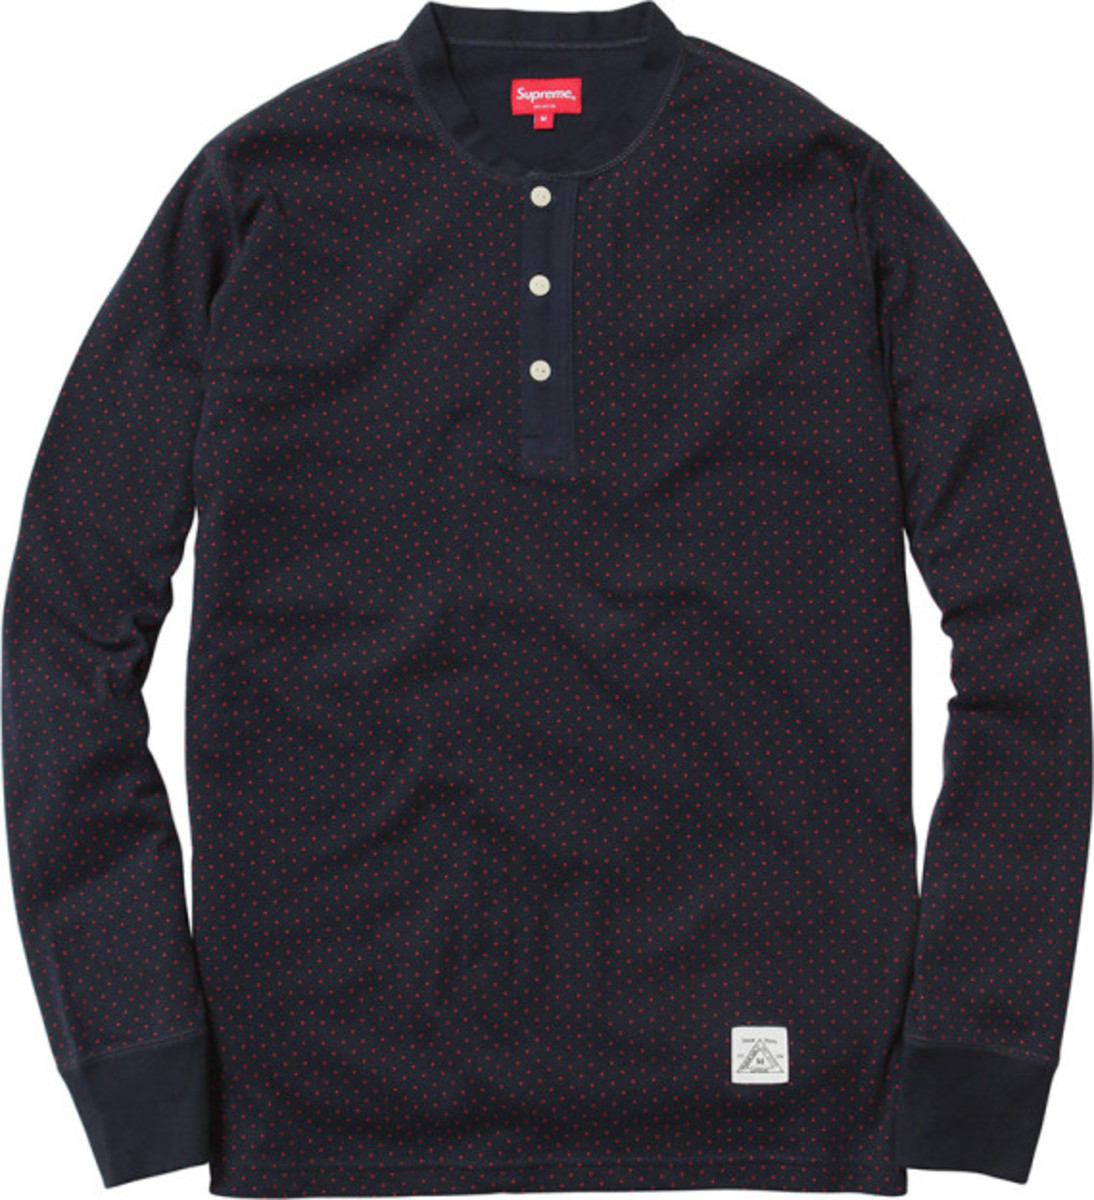 supreme-fall-winter-2013-apparel-collection-098